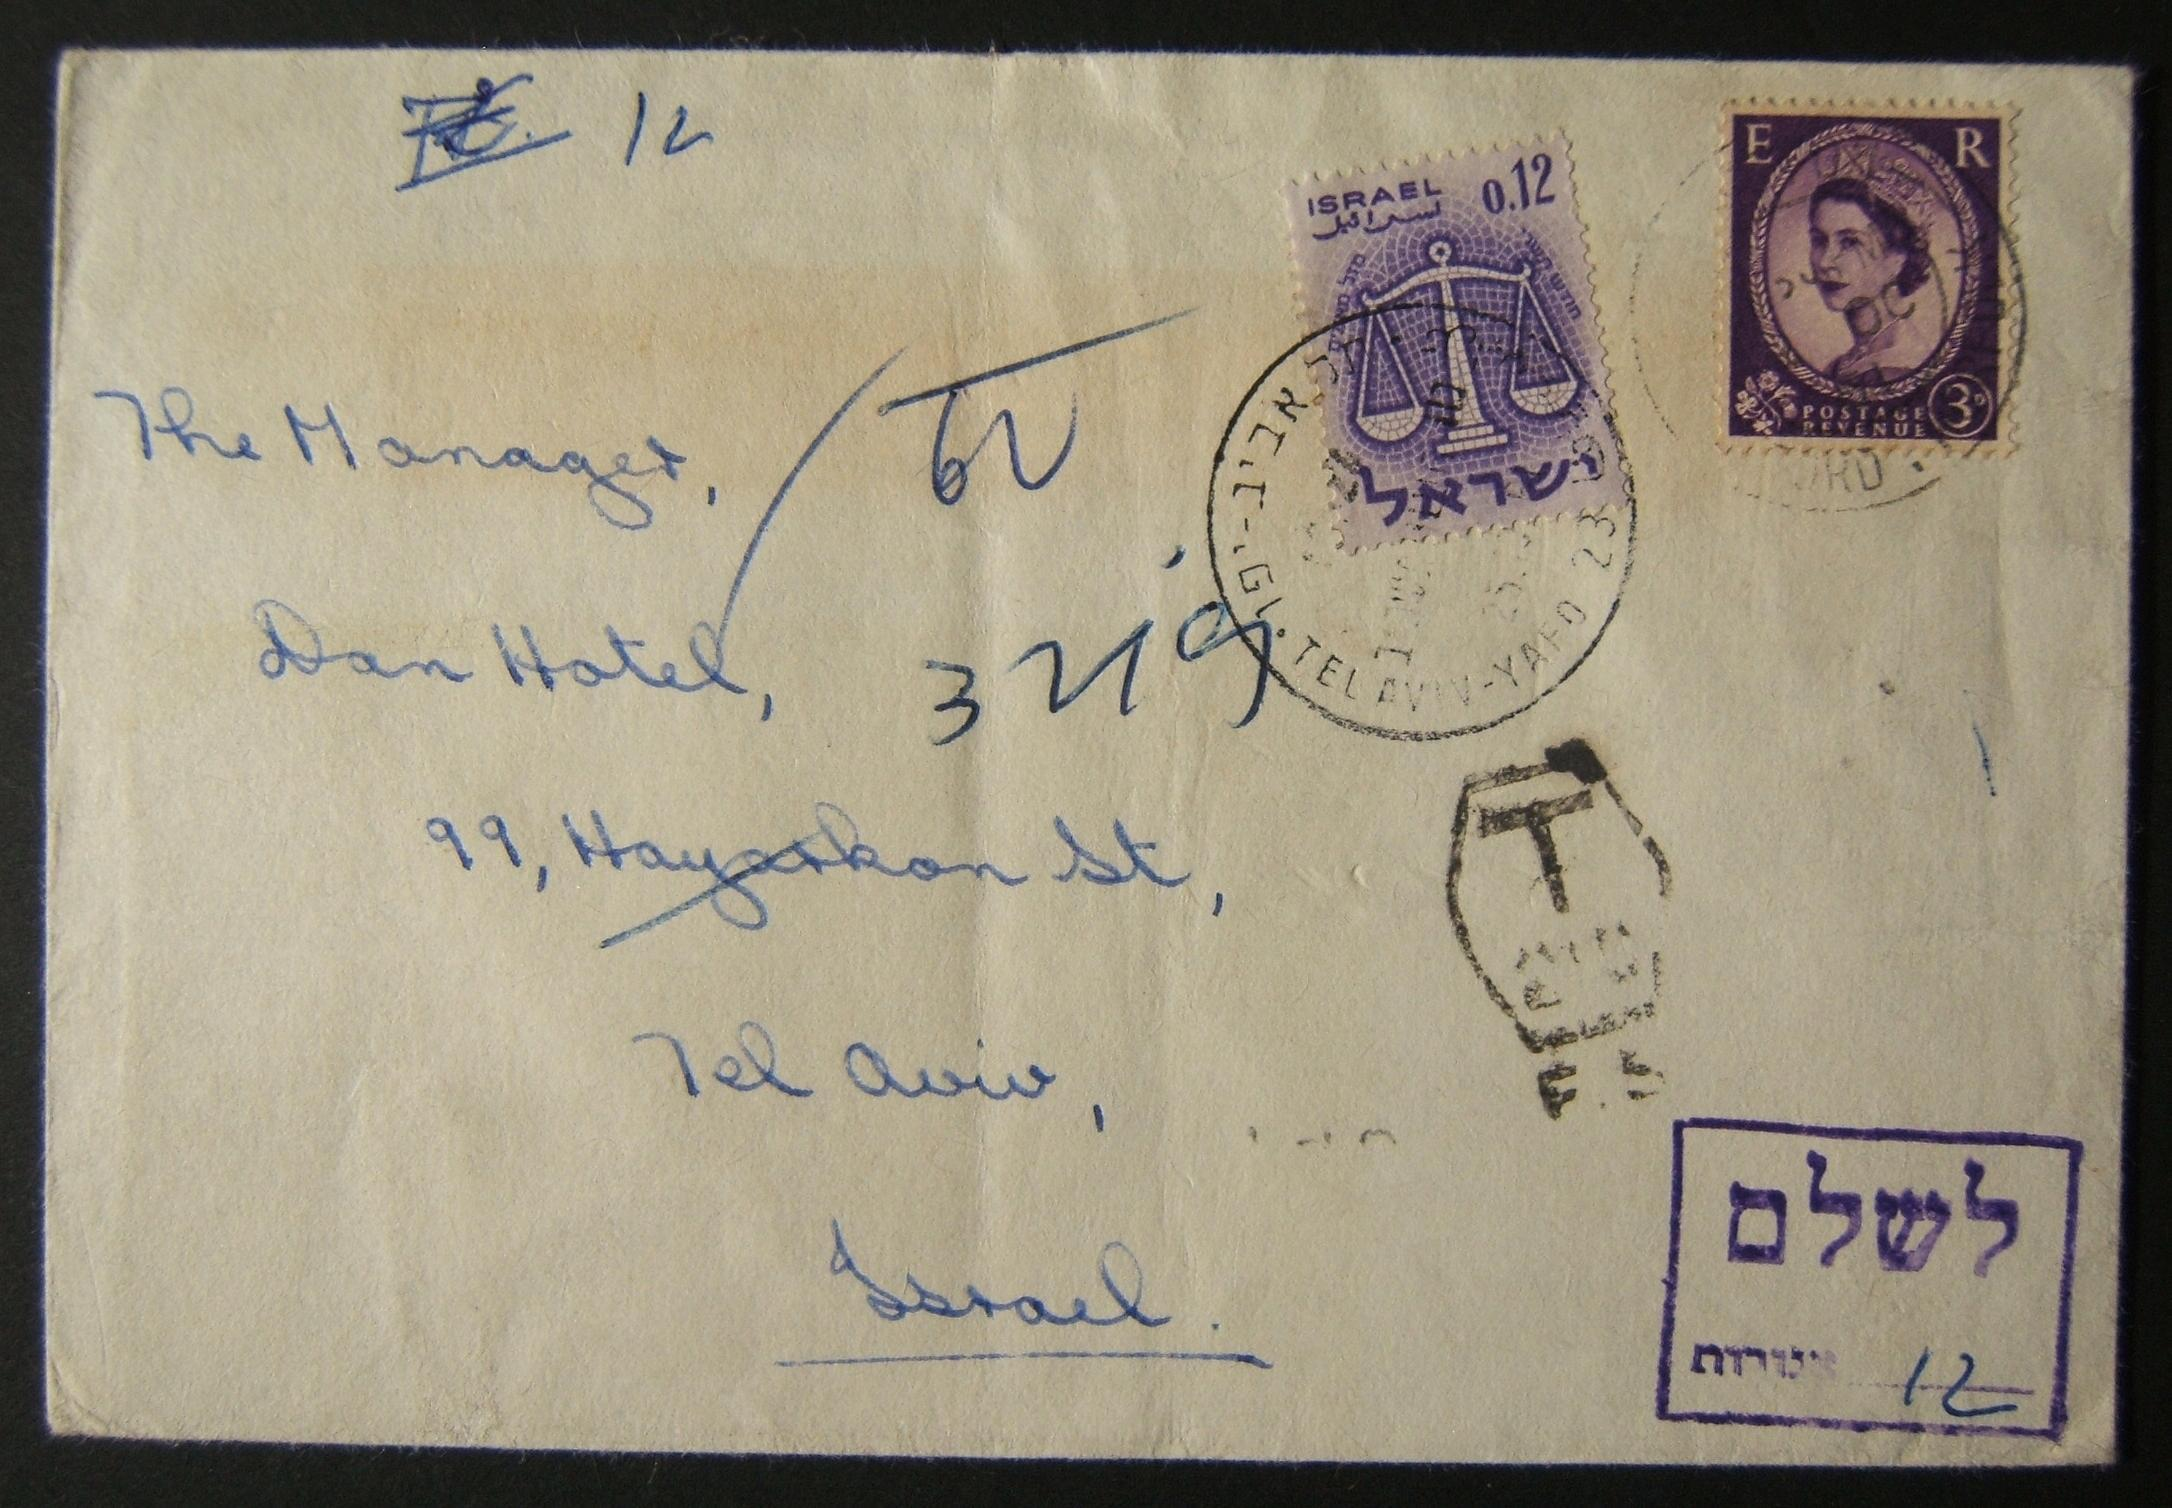 1961 incoming British taxed mail: 2(?) OC 1961 surface mailed commercial cover ex BRITAIN to TLV underfranked at 3d and taxed 0.12L in Israel, paid 25-10-61 using 1961 Zodiac Ba210